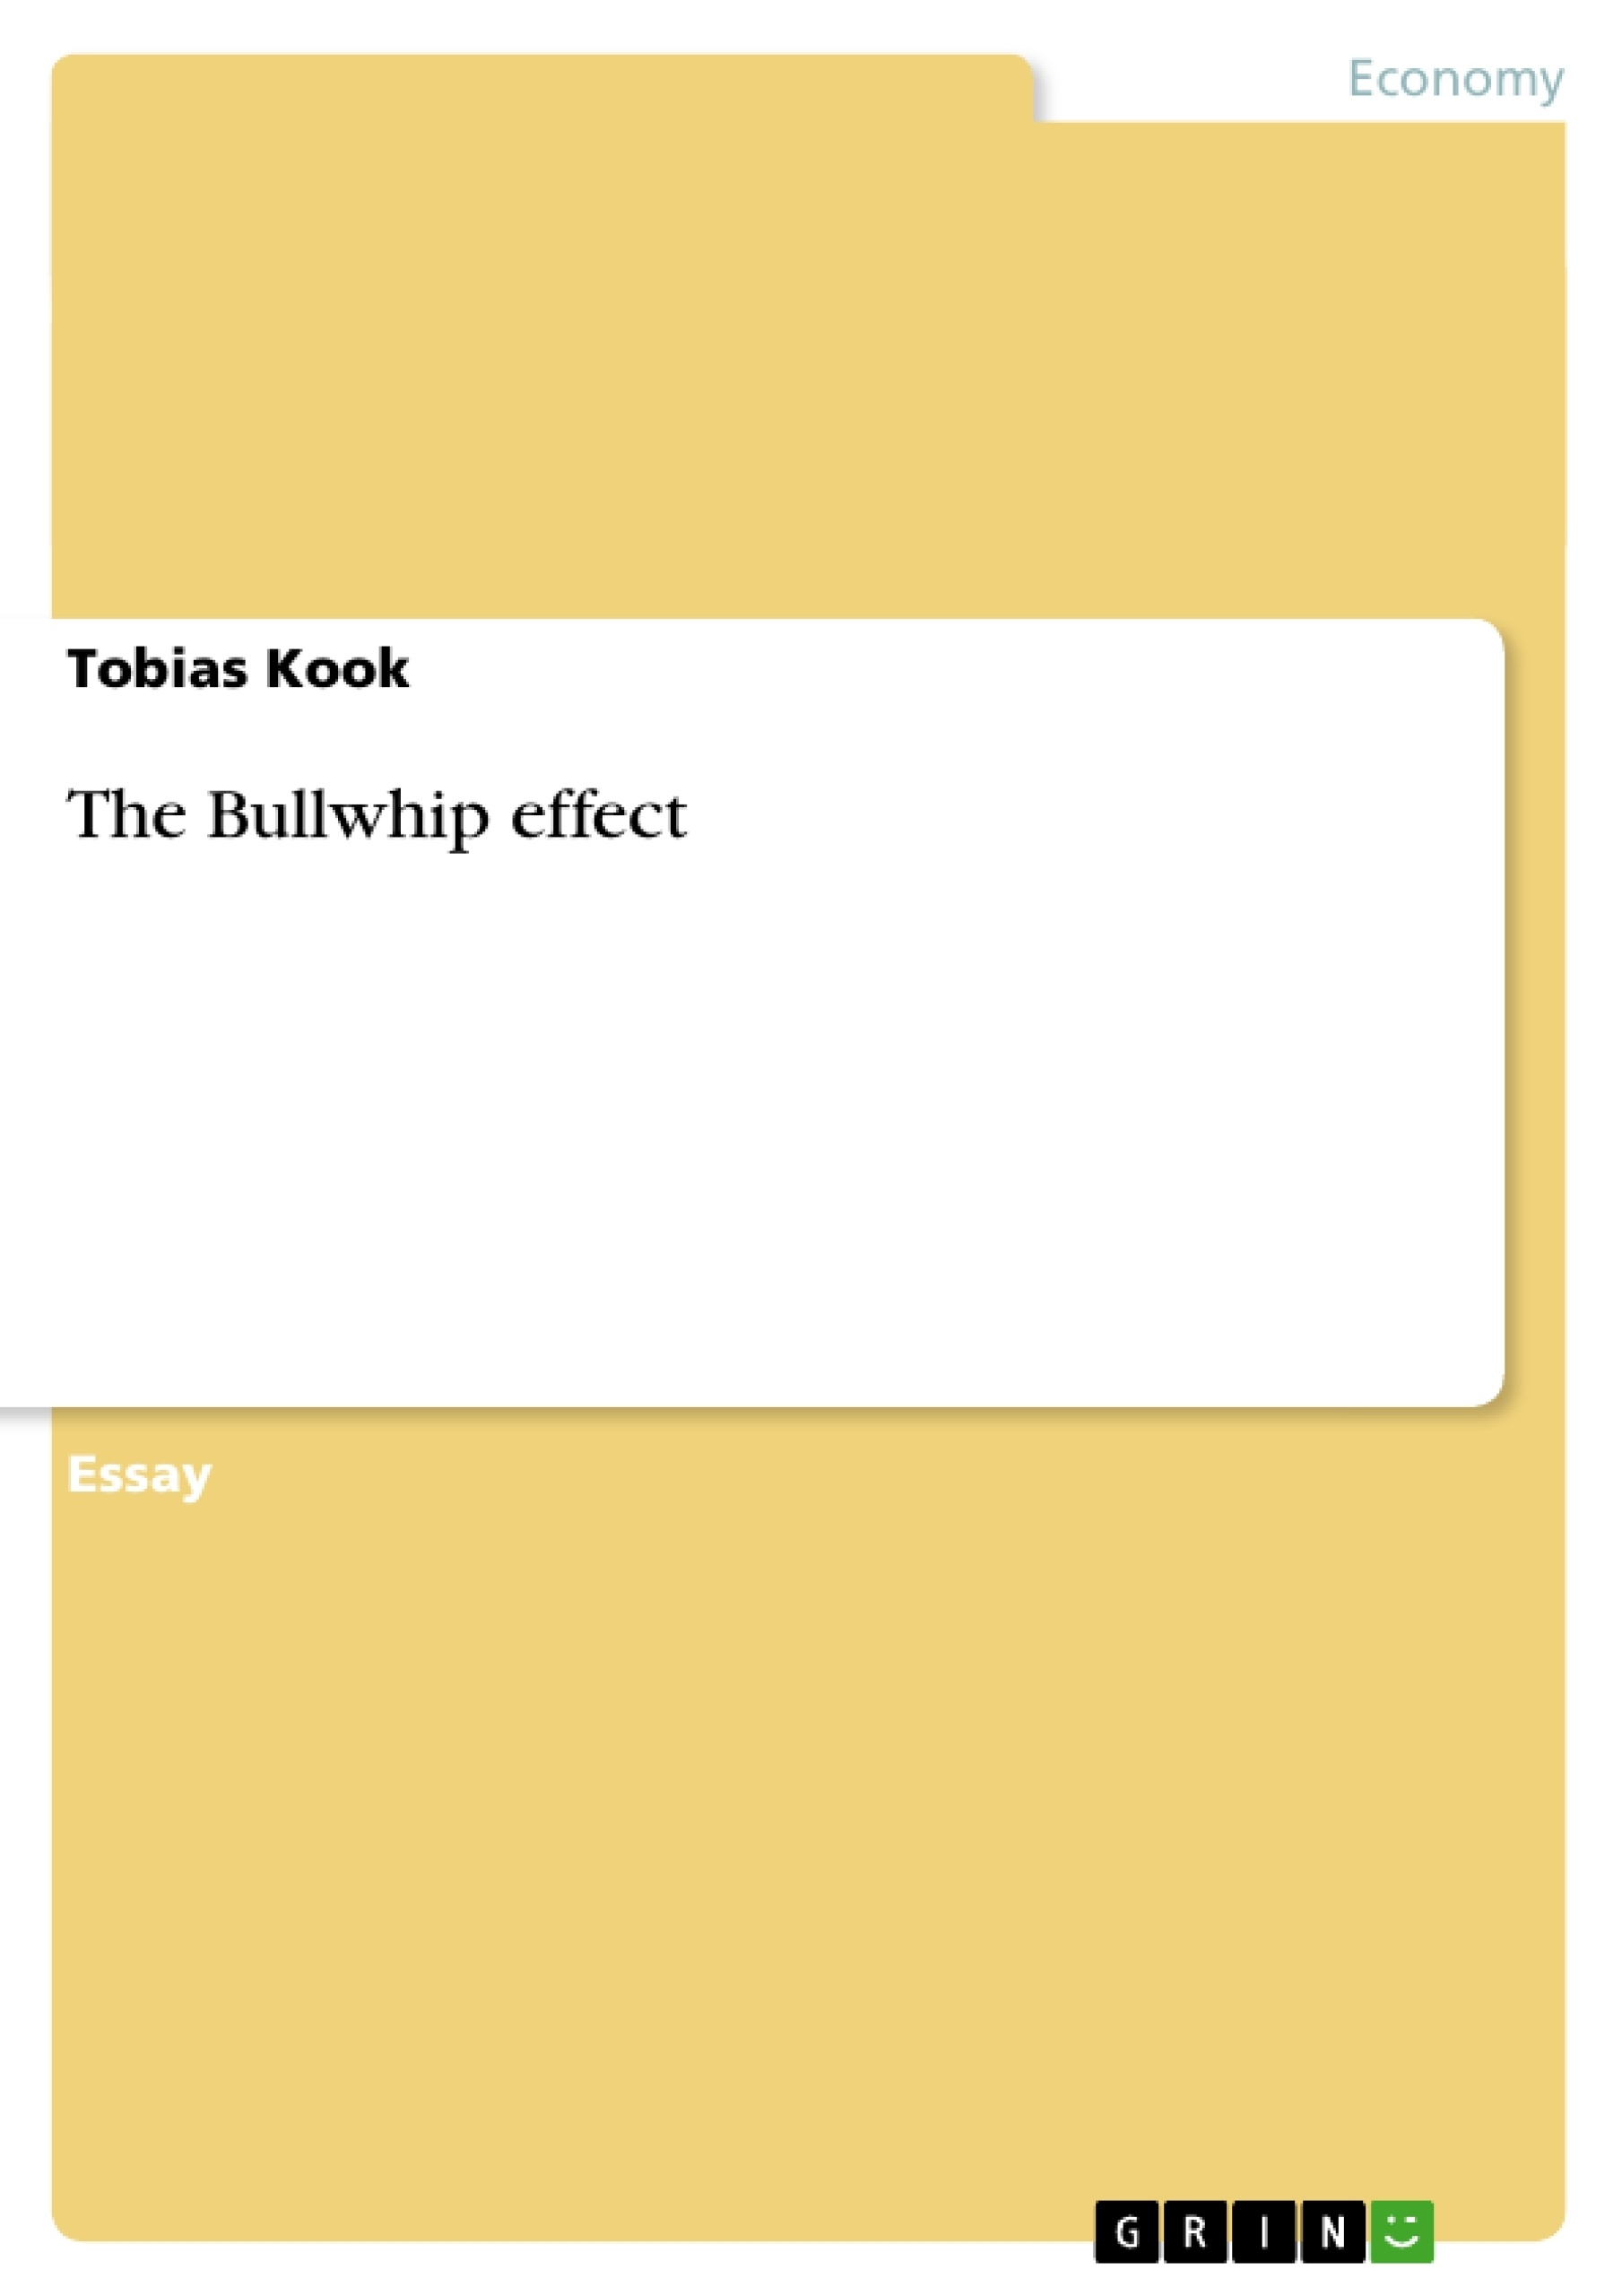 Title: The Bullwhip effect